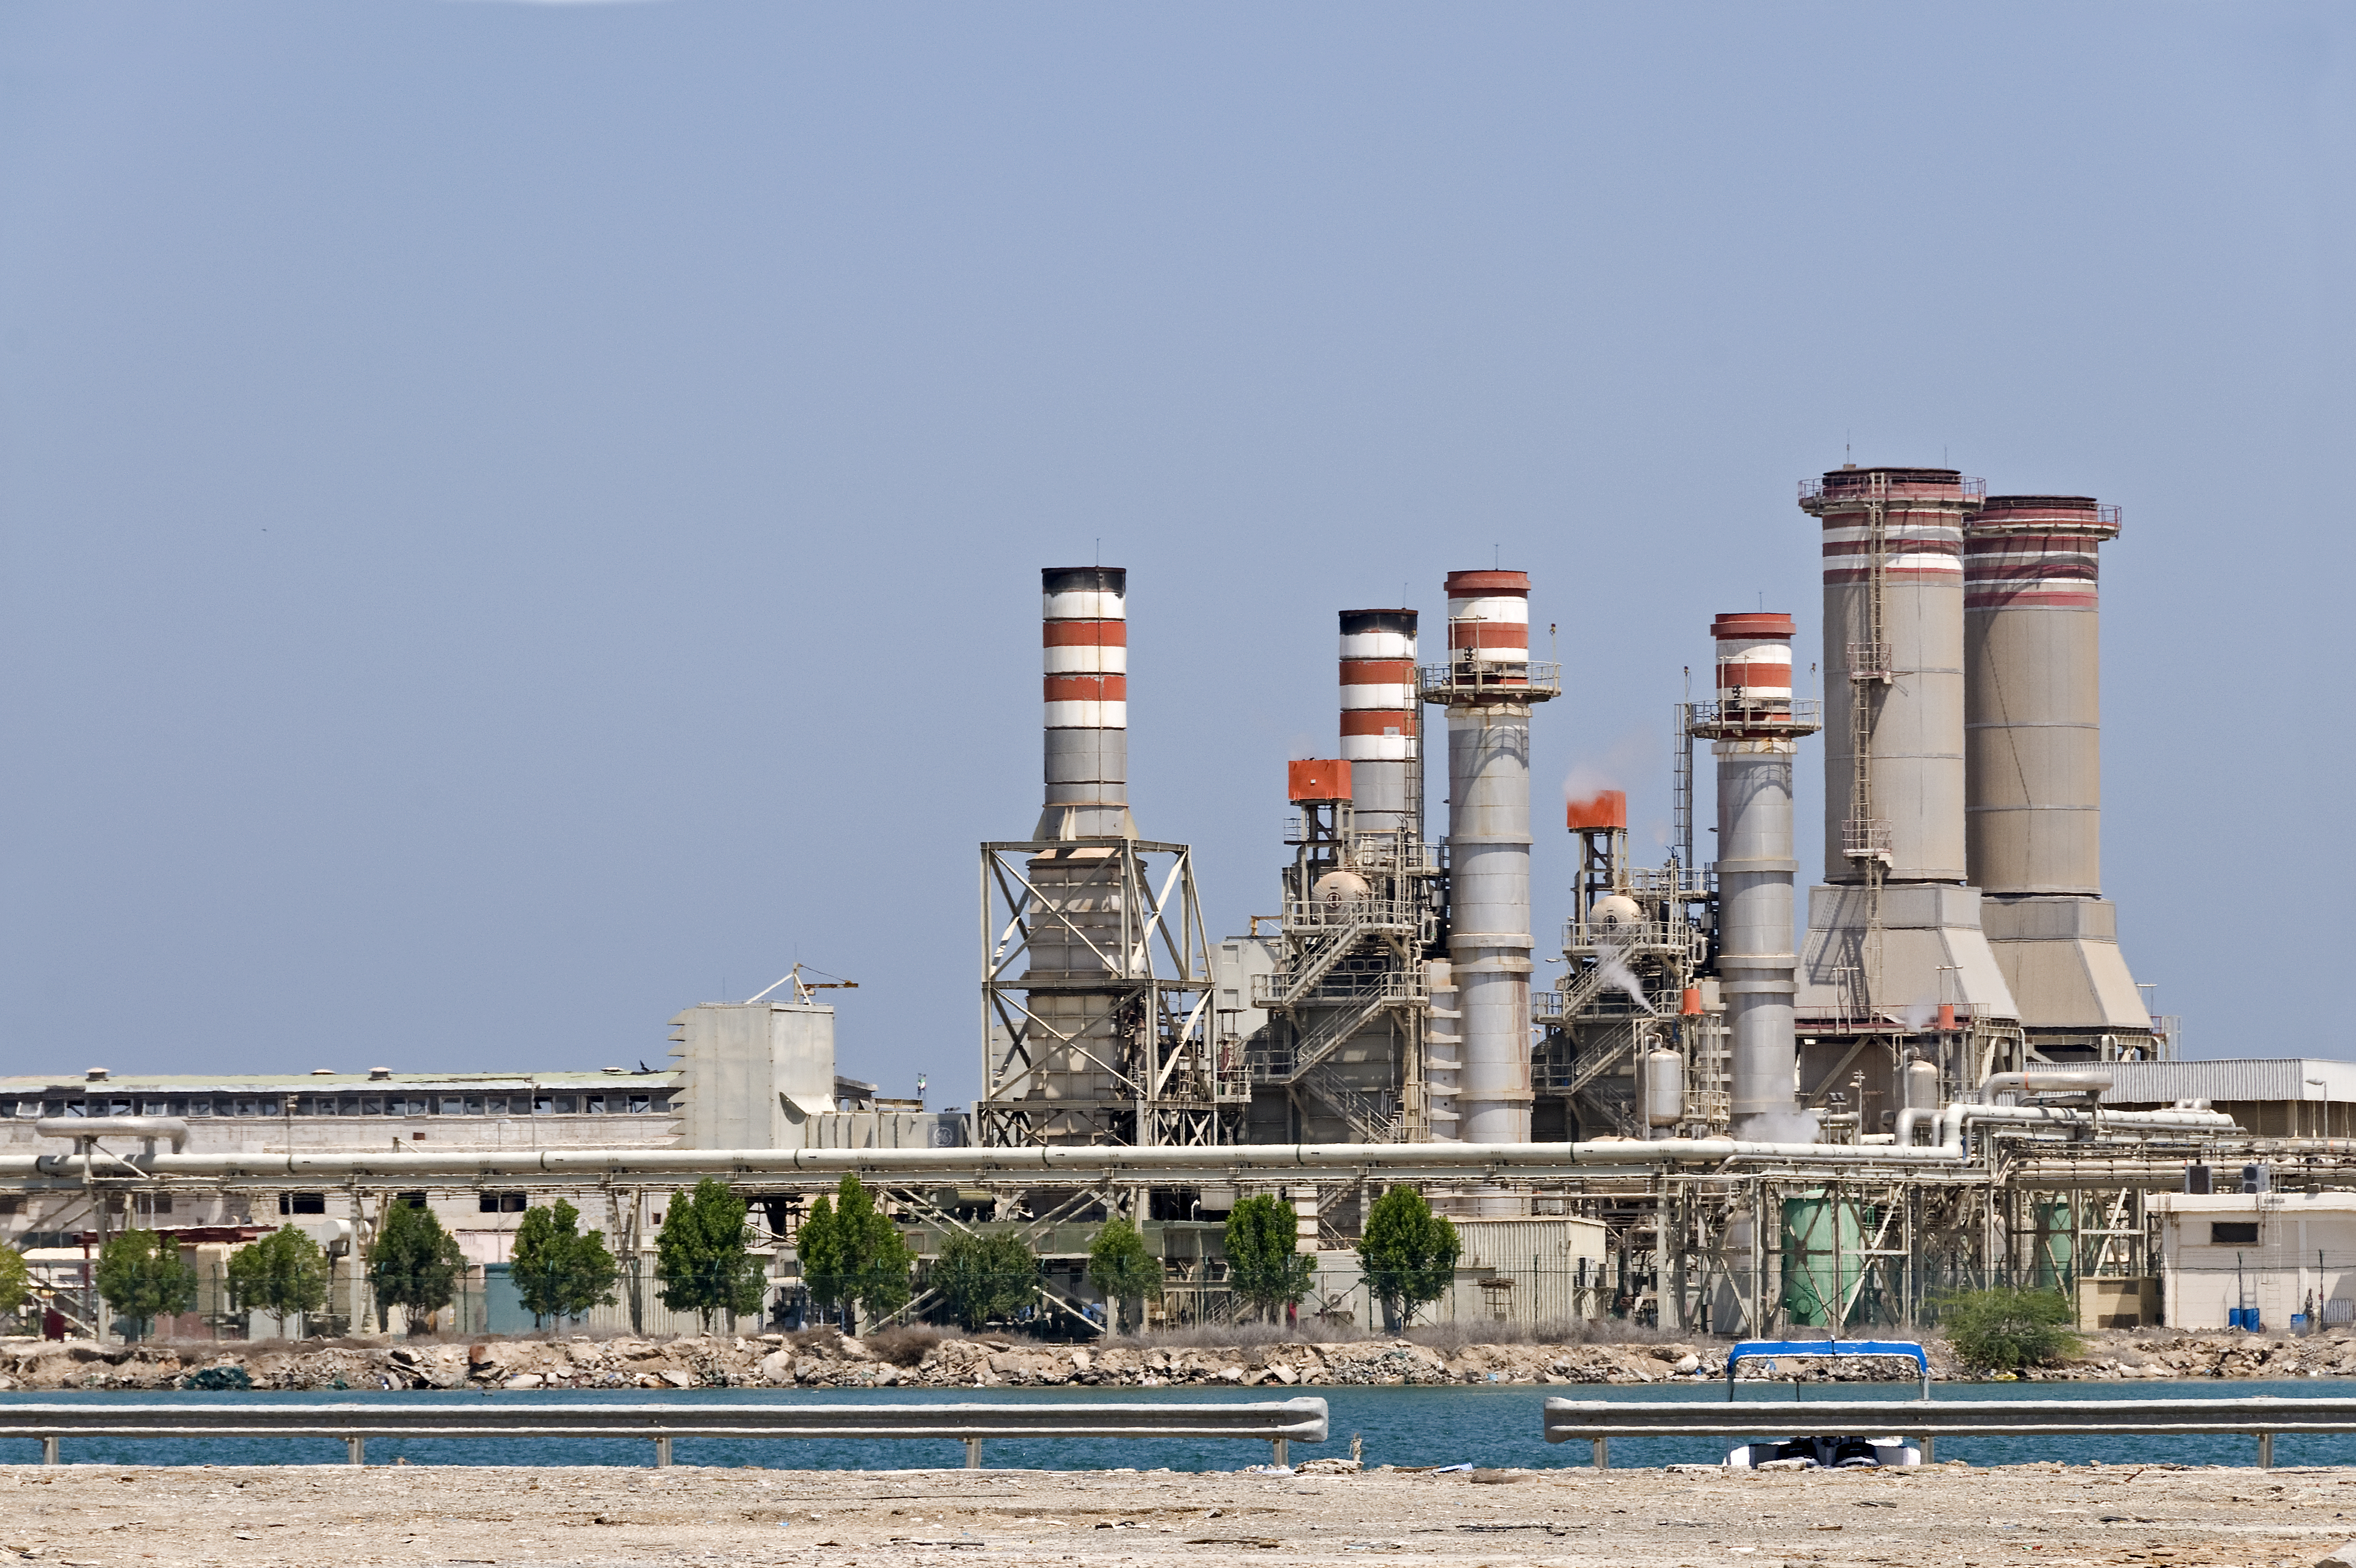 The Disadvantages of Desalination